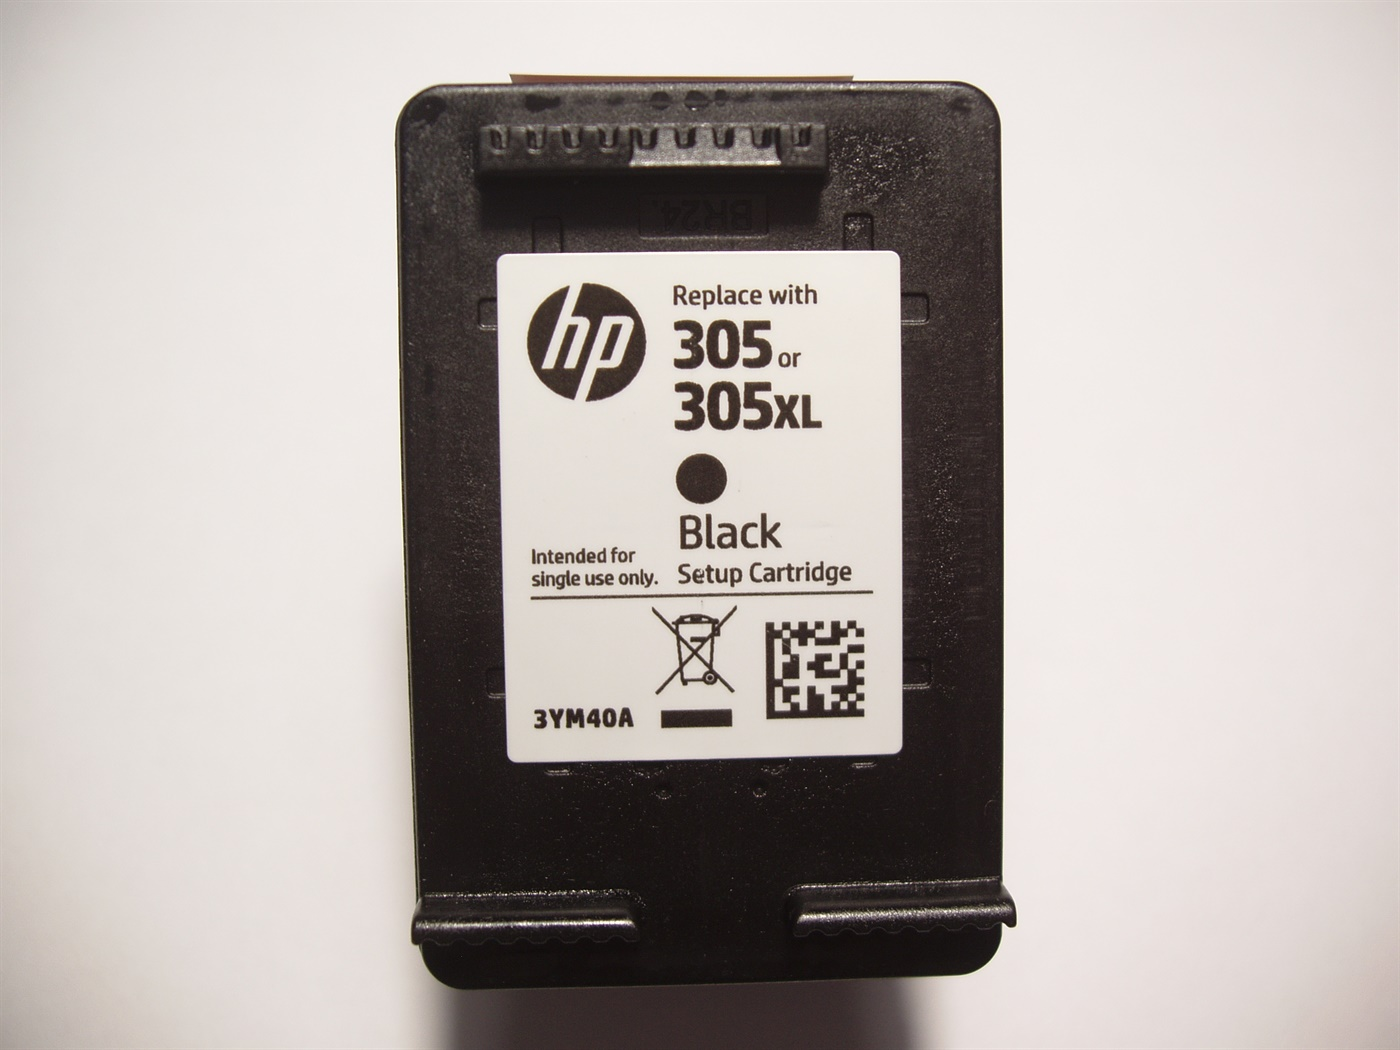 HP 305 (3YM61) black